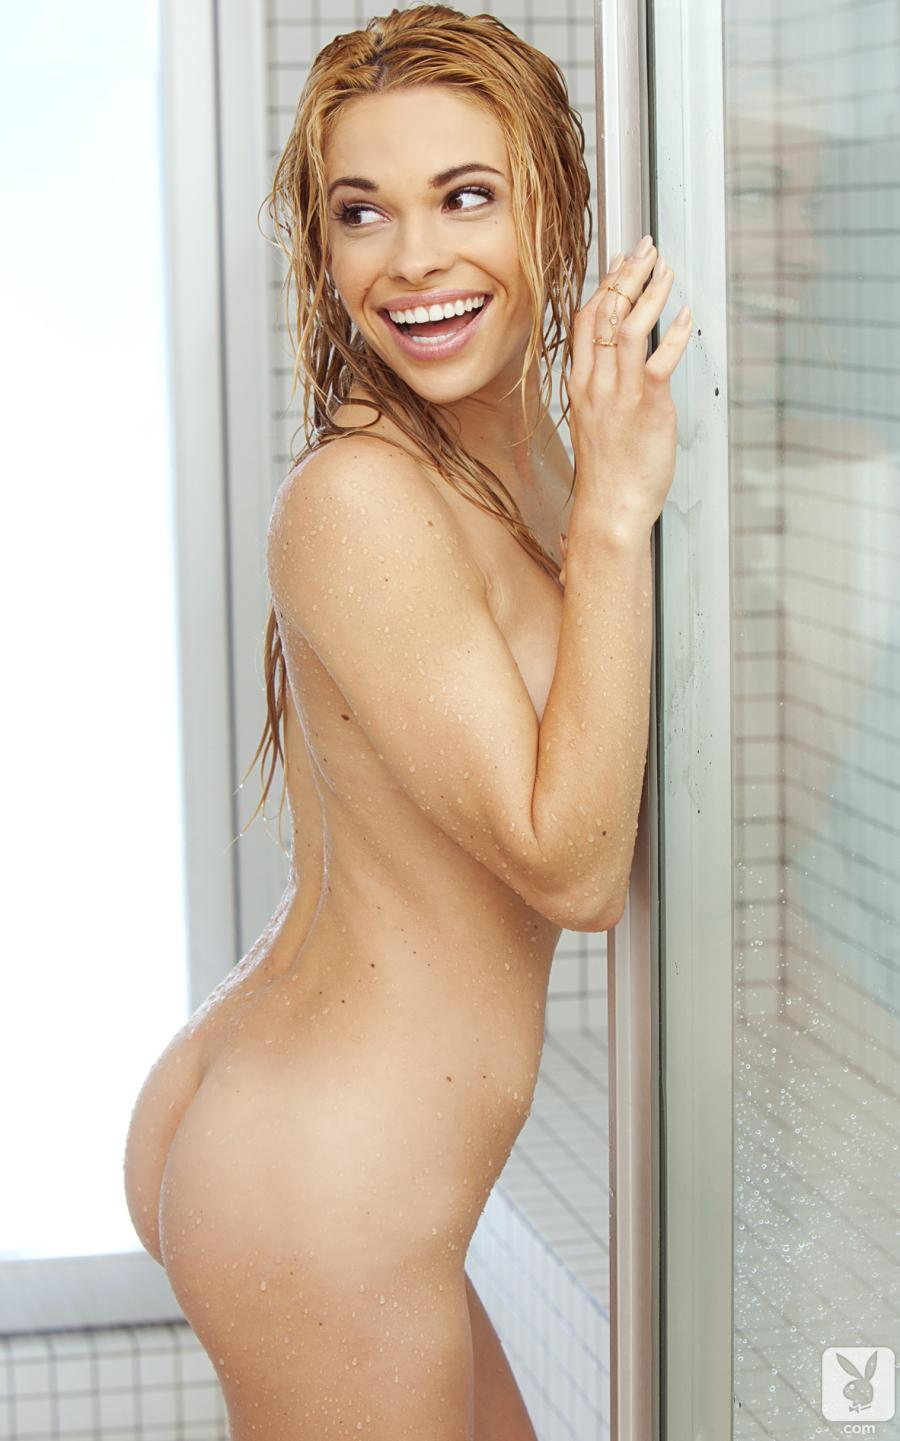 Playmate Of The Year Dani Mathers Nude Full Frontal In Shower 24